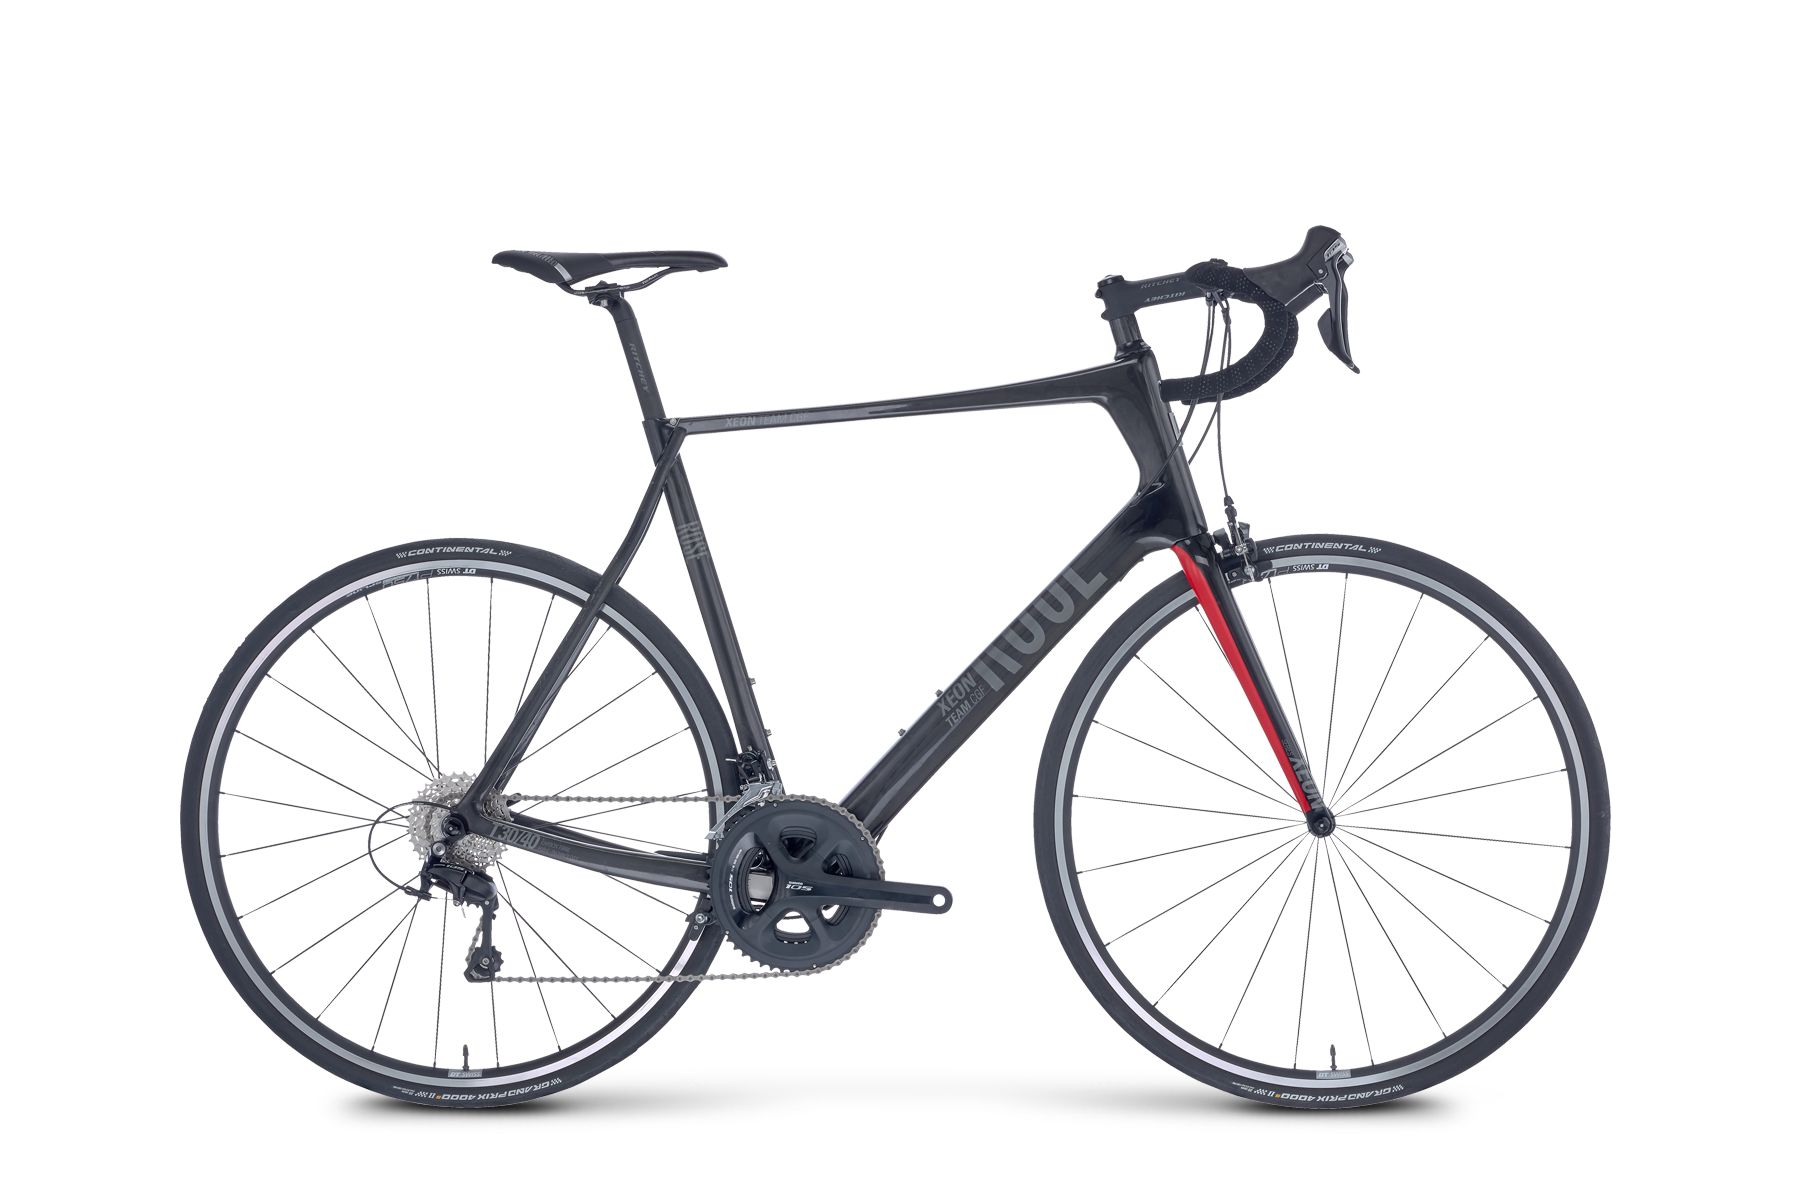 ROSE XEON TEAM CGF showroom bike size: 62cm